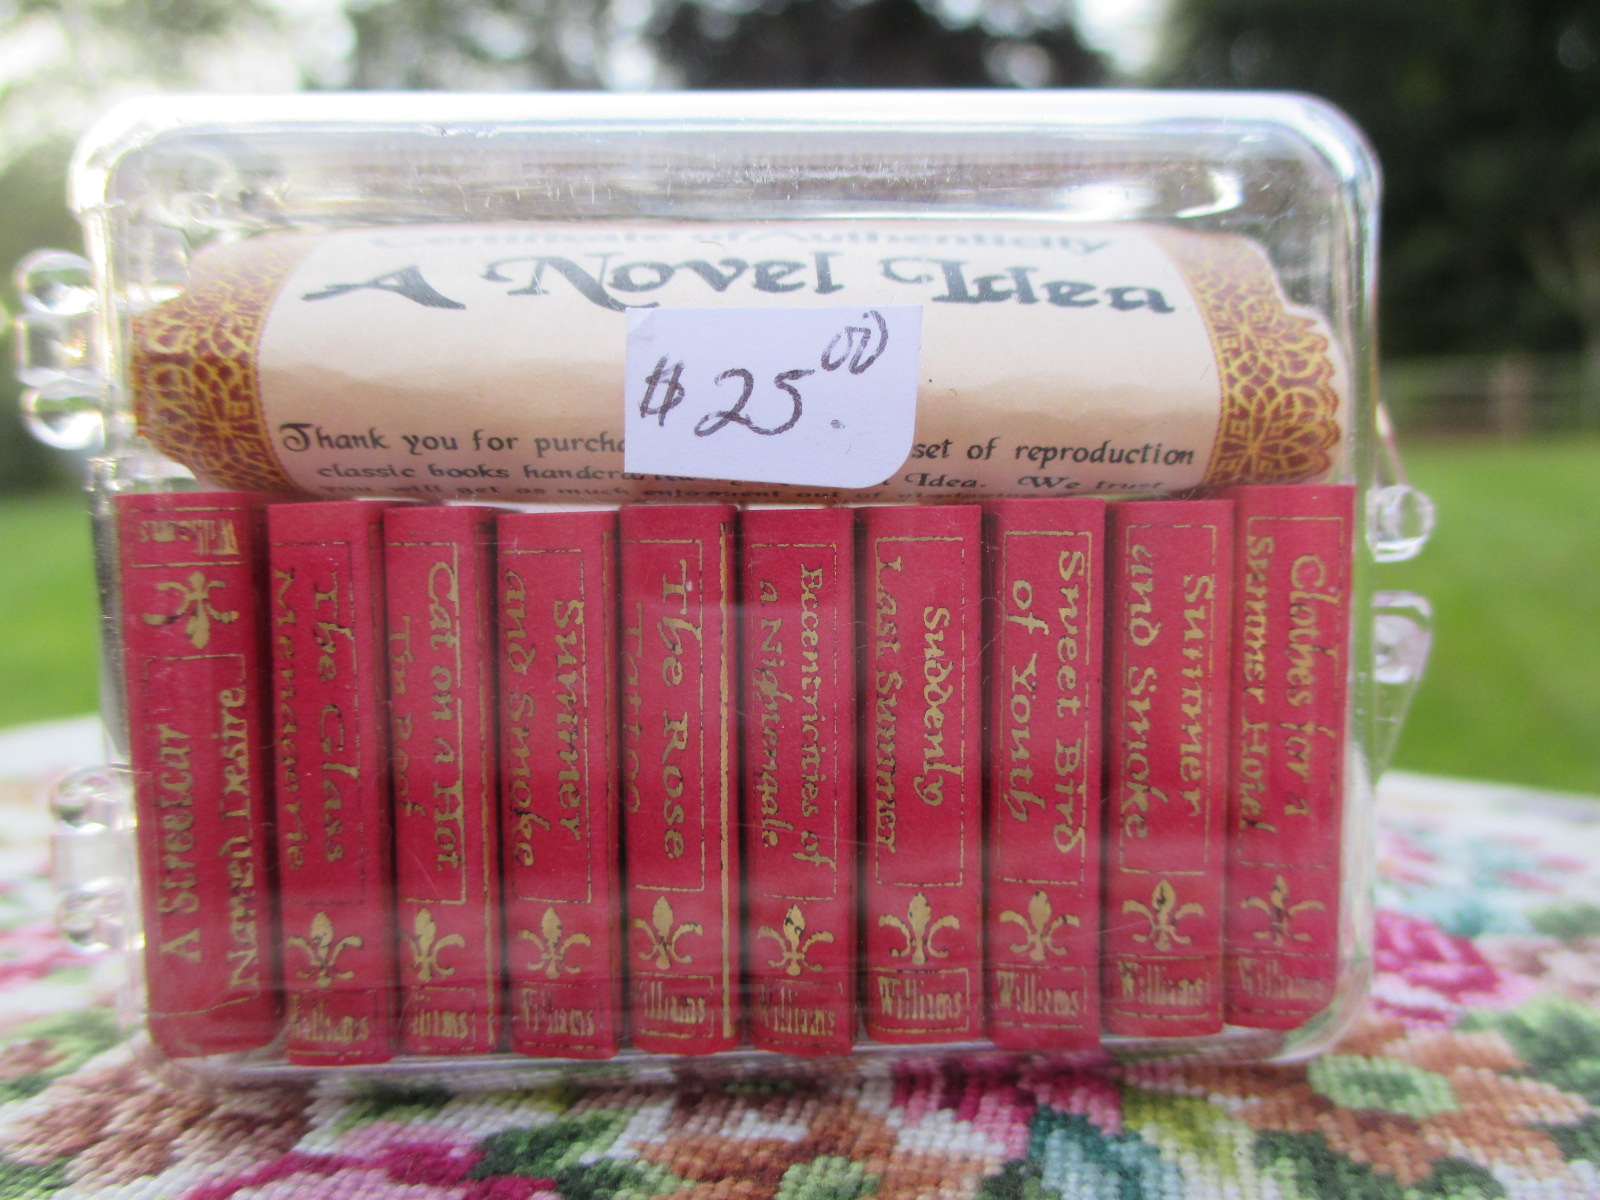 A Novel Idea Boxed Book Set of 10 by Tennessee Williams